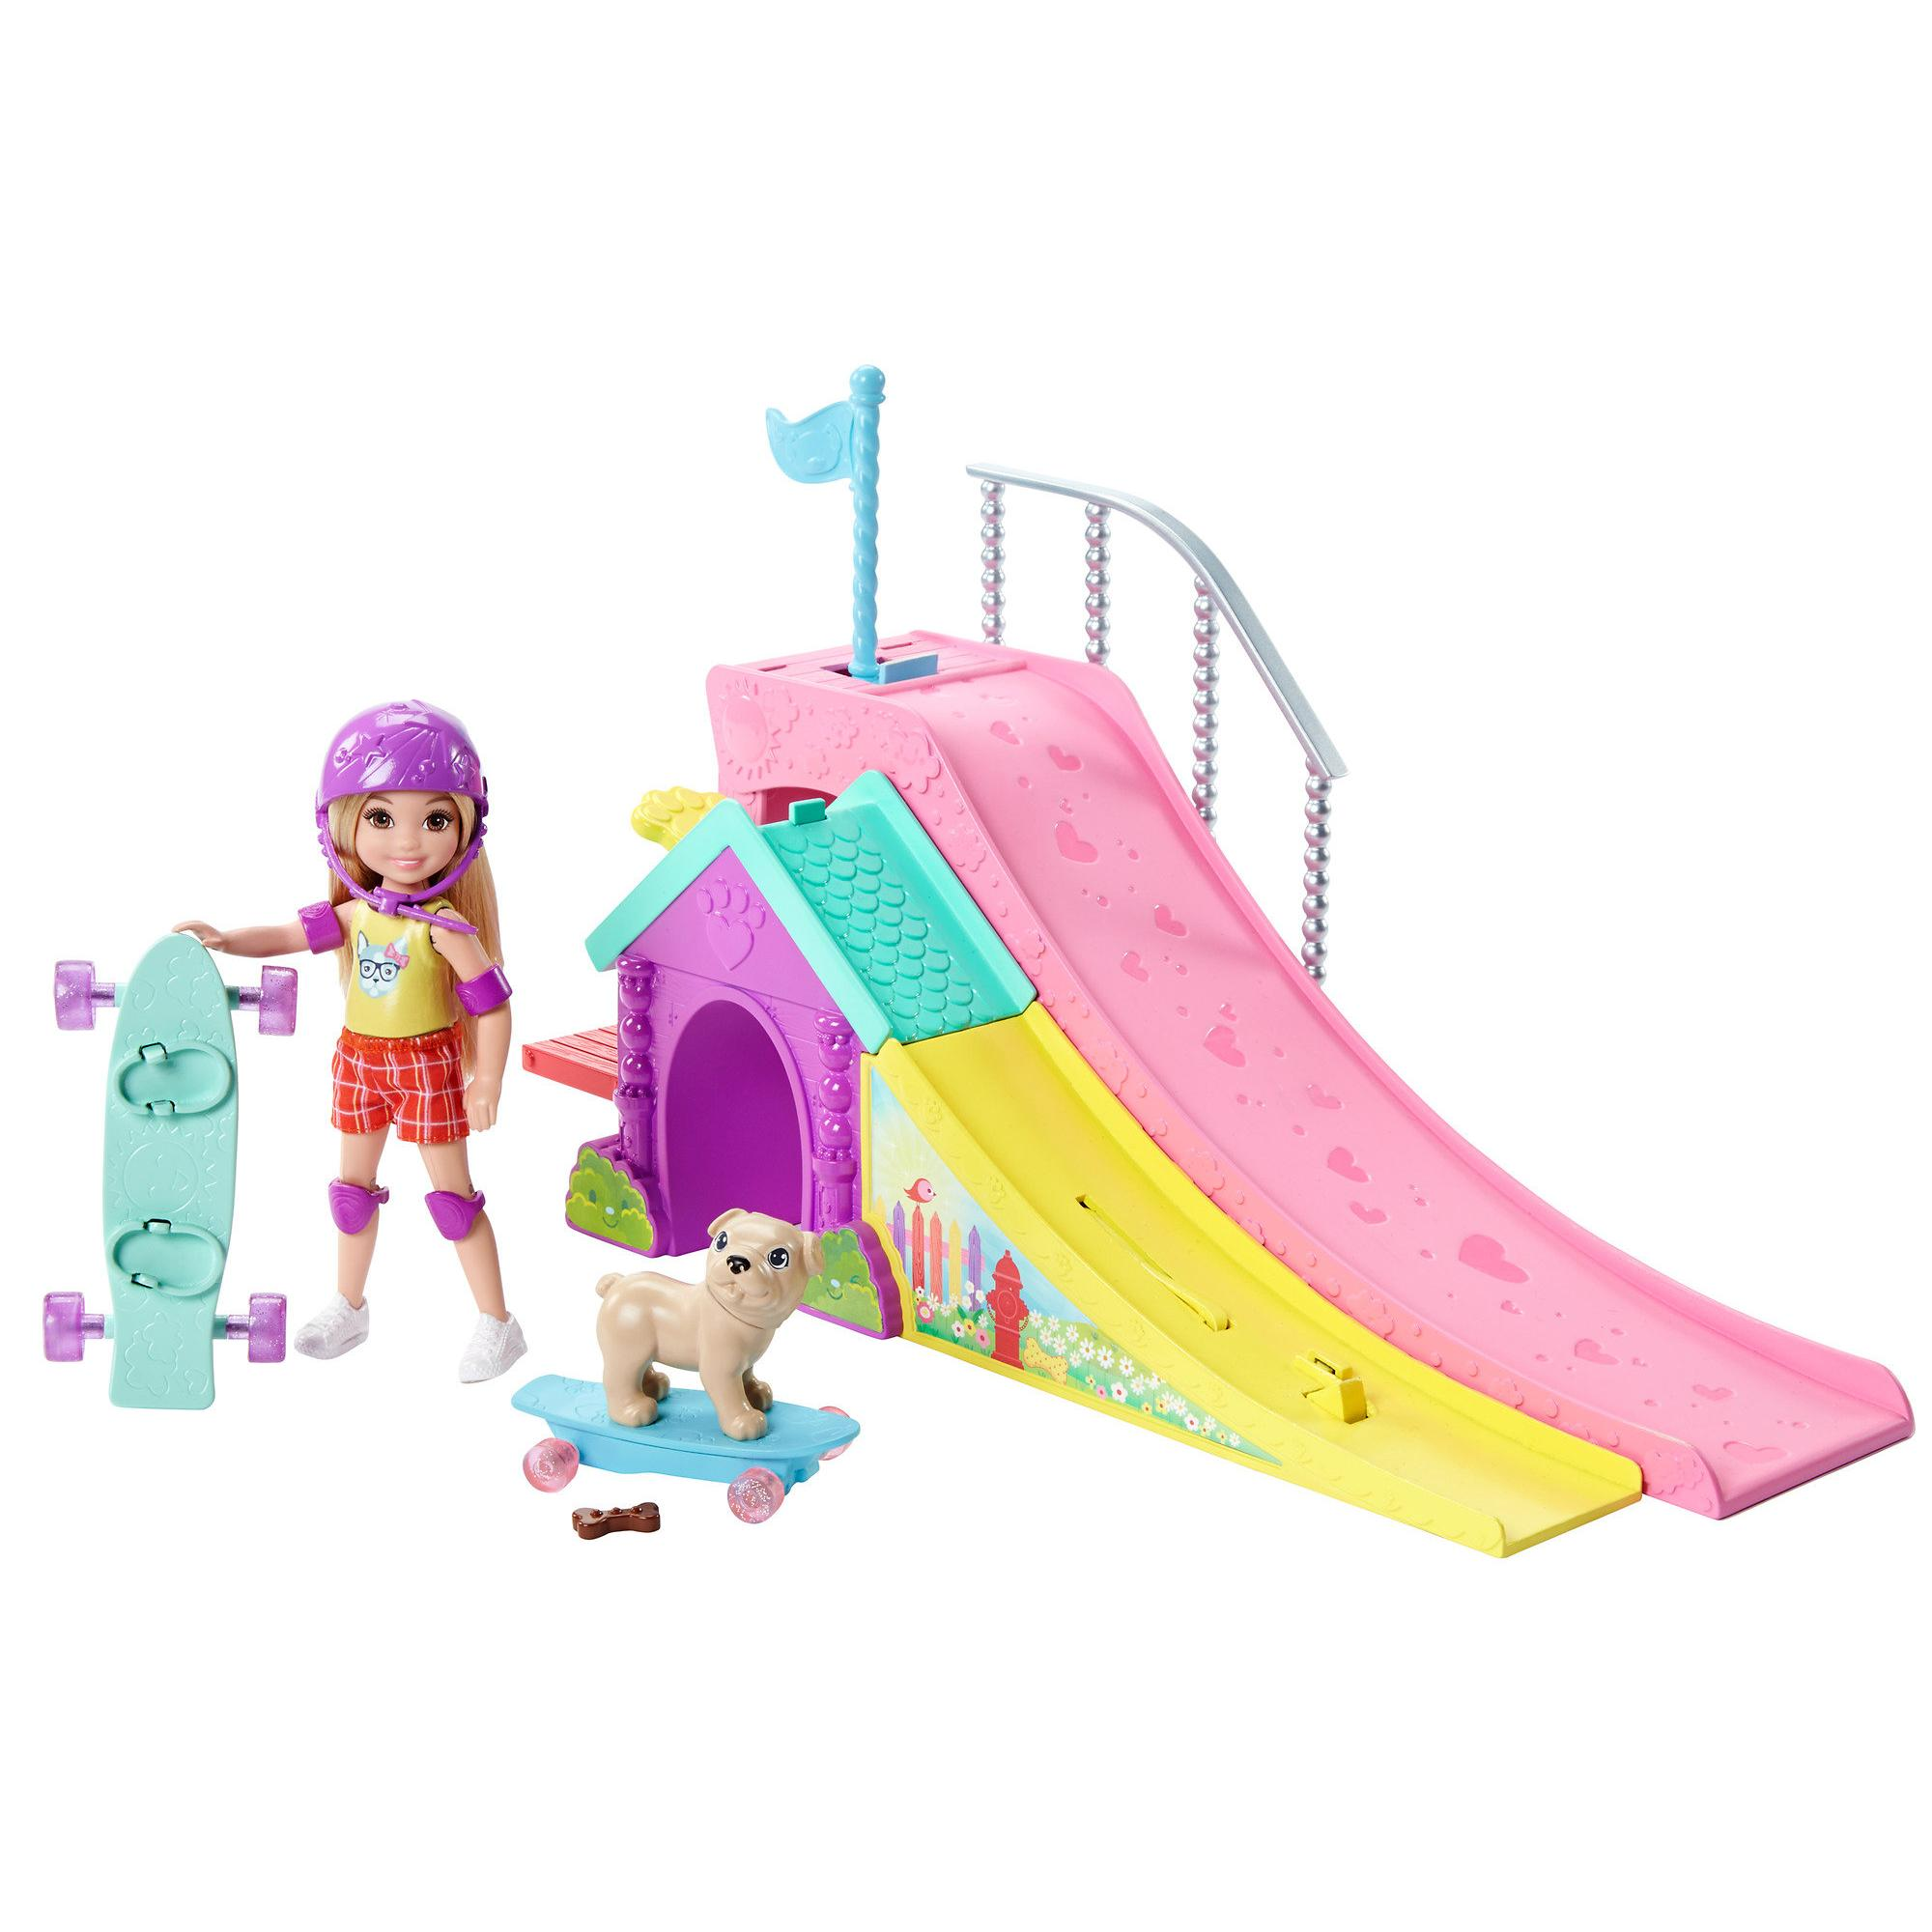 Barbie Club Chelsea Skatepark Playset with Chelsea Doll & Flipping Puppy